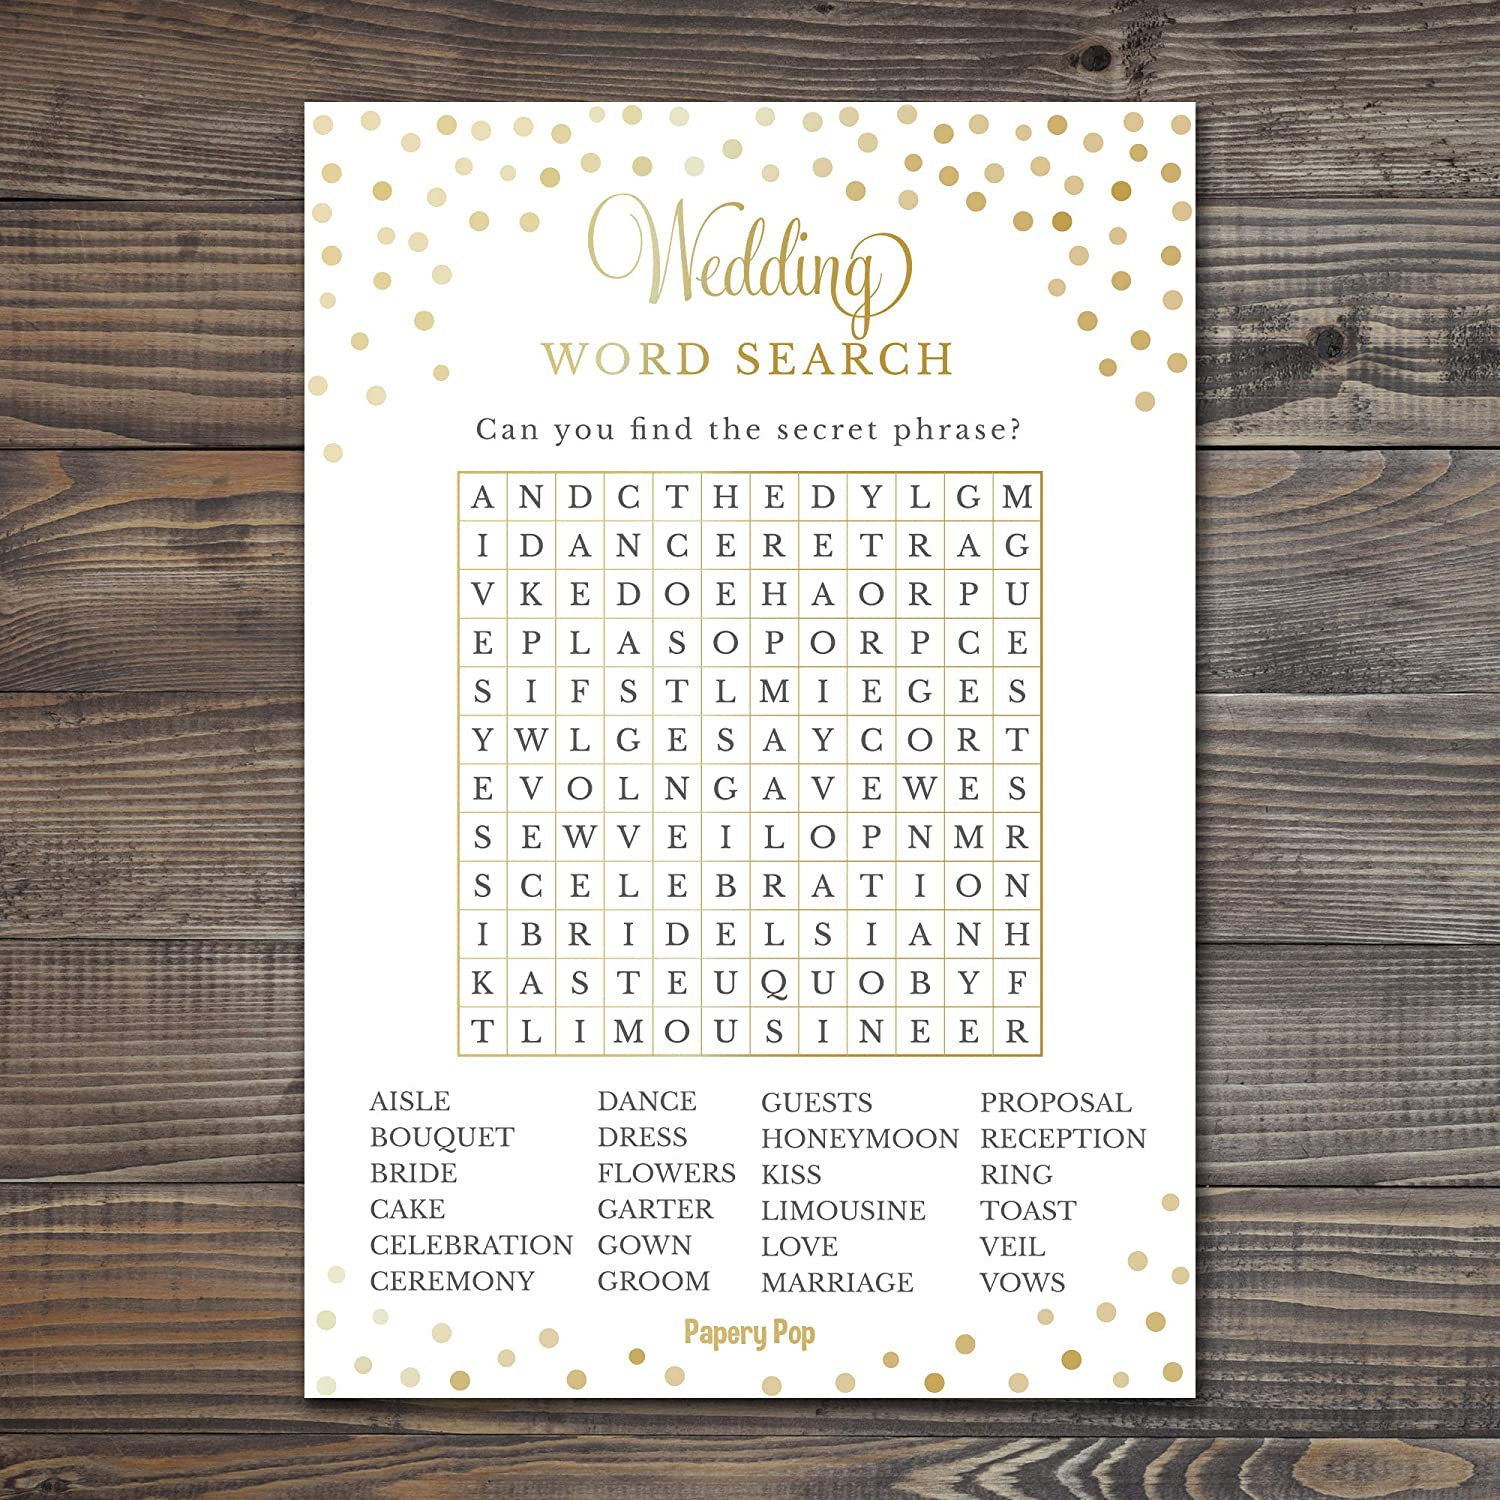 50 Pack Bachelorette Party Games Ideas Activities Supplies Wedding Word Search Game Cards - Bridal Shower Games